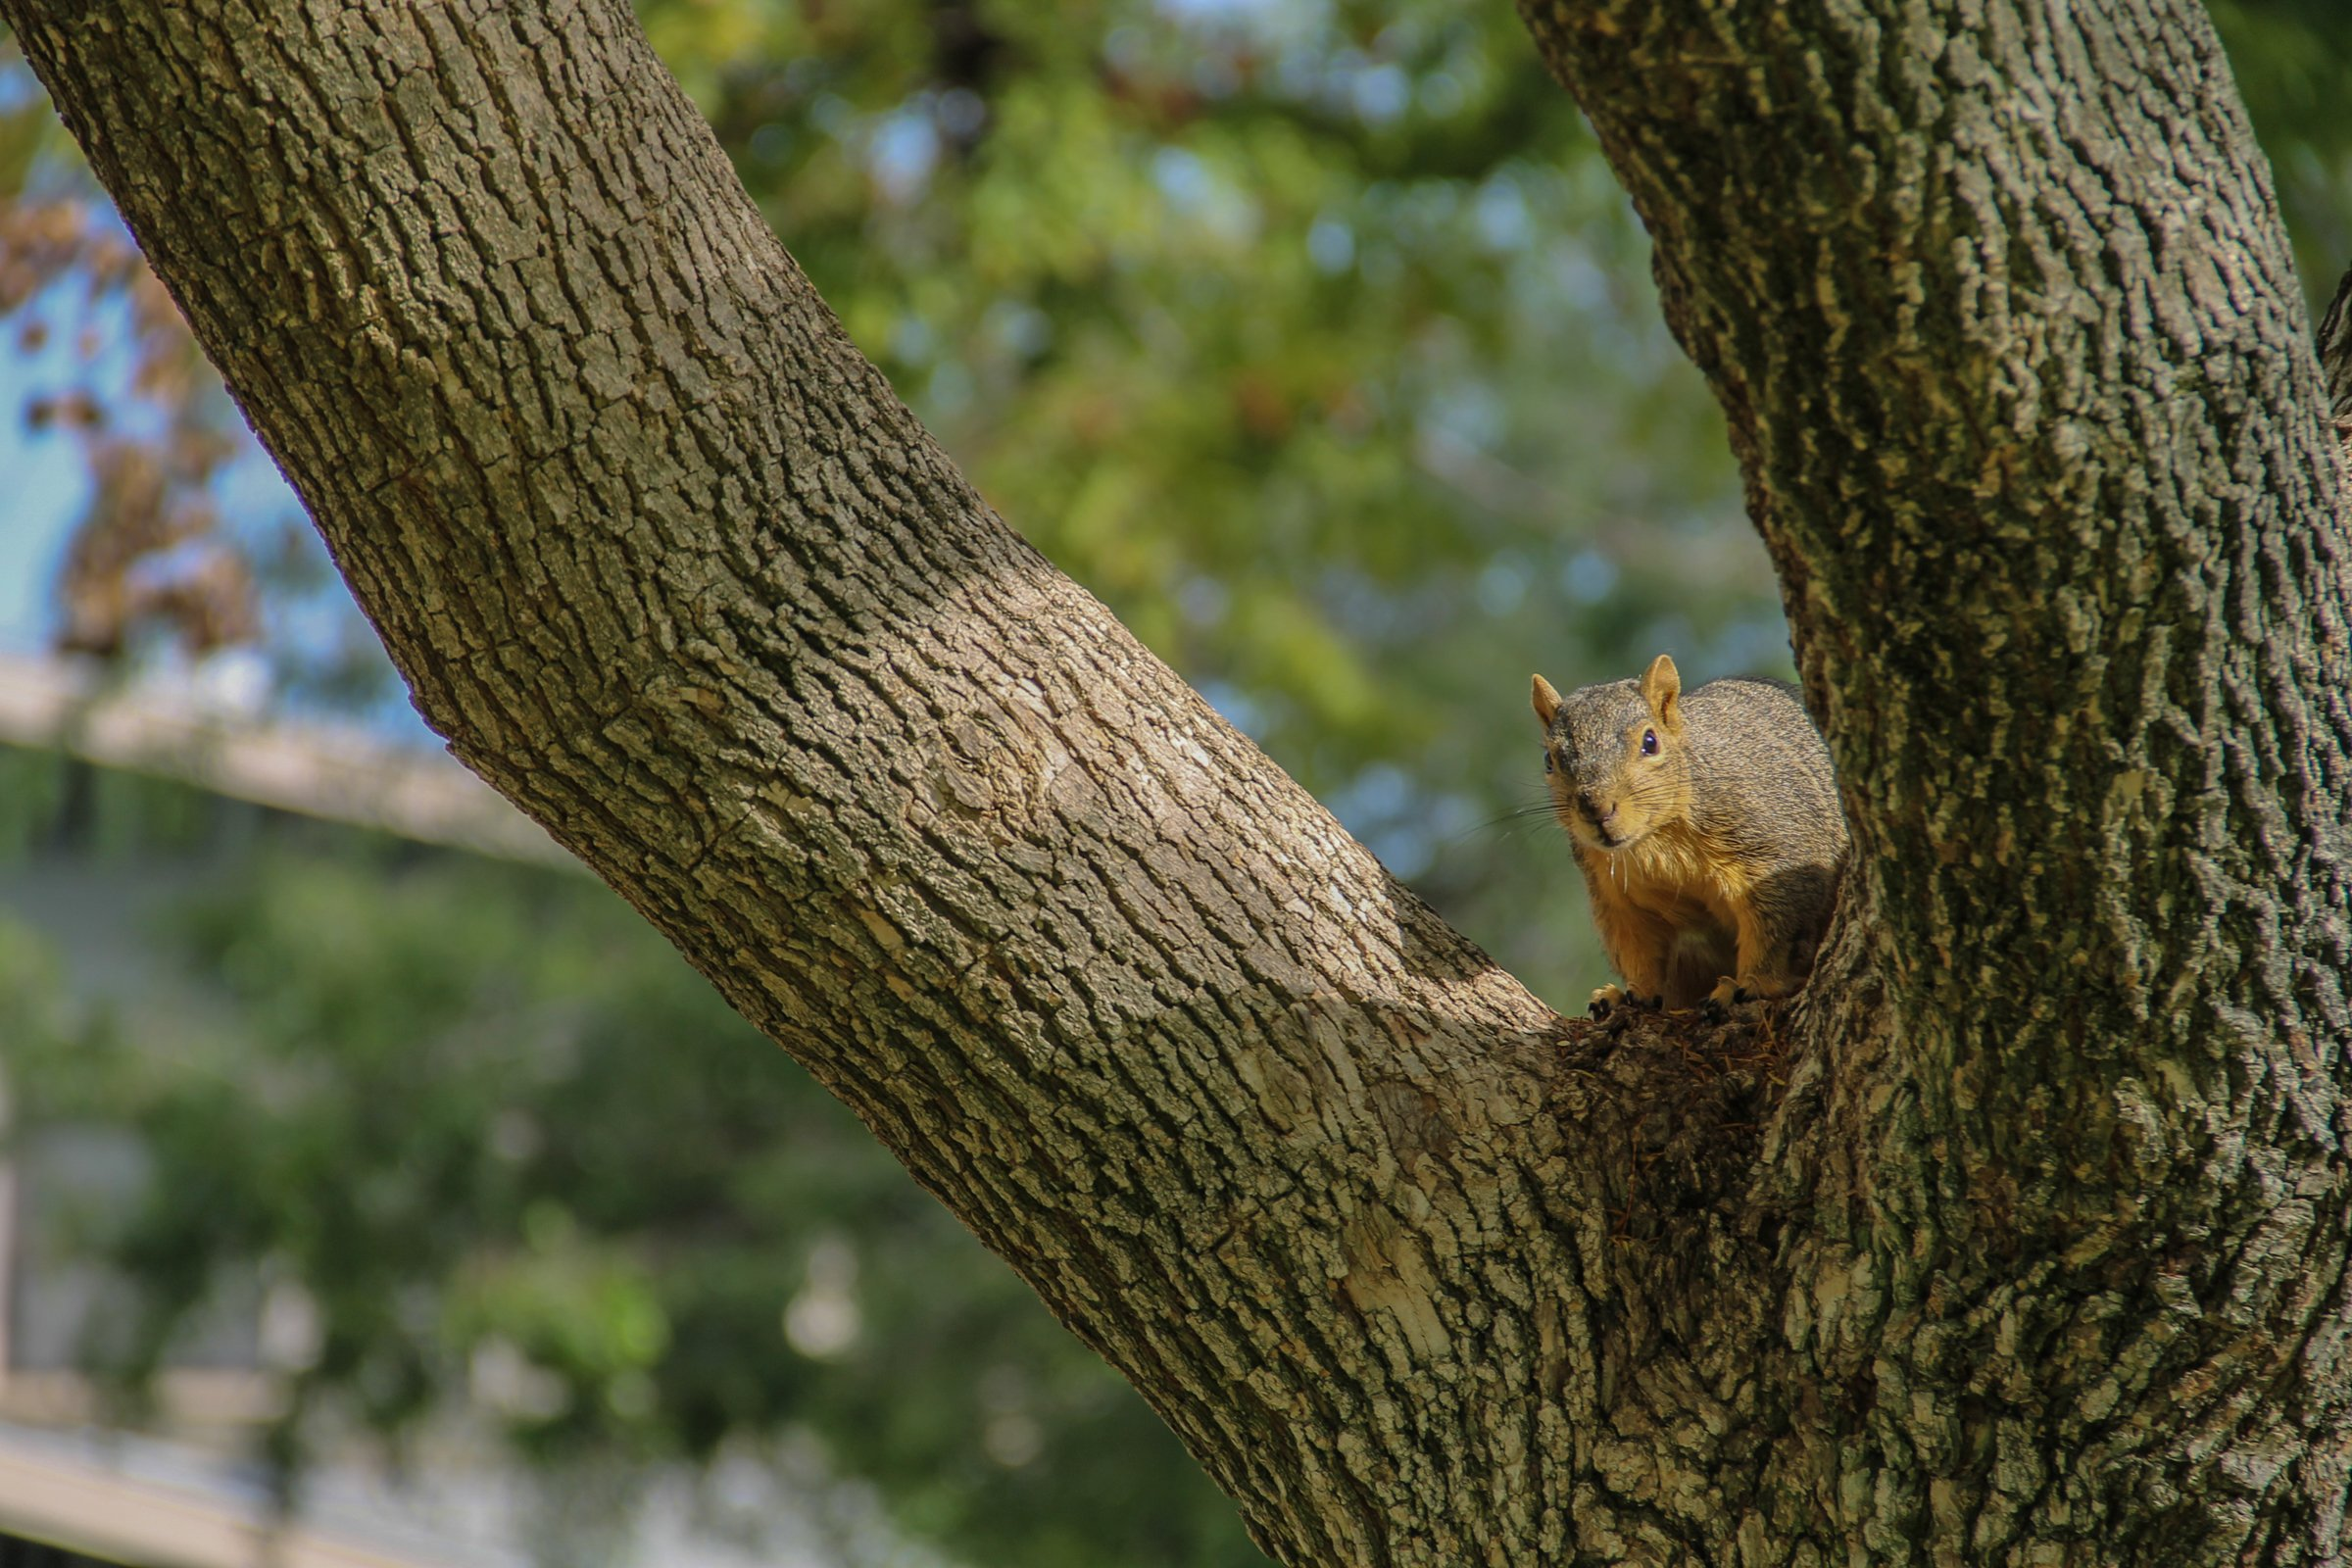 Squirrel Sitting on Tree Branch